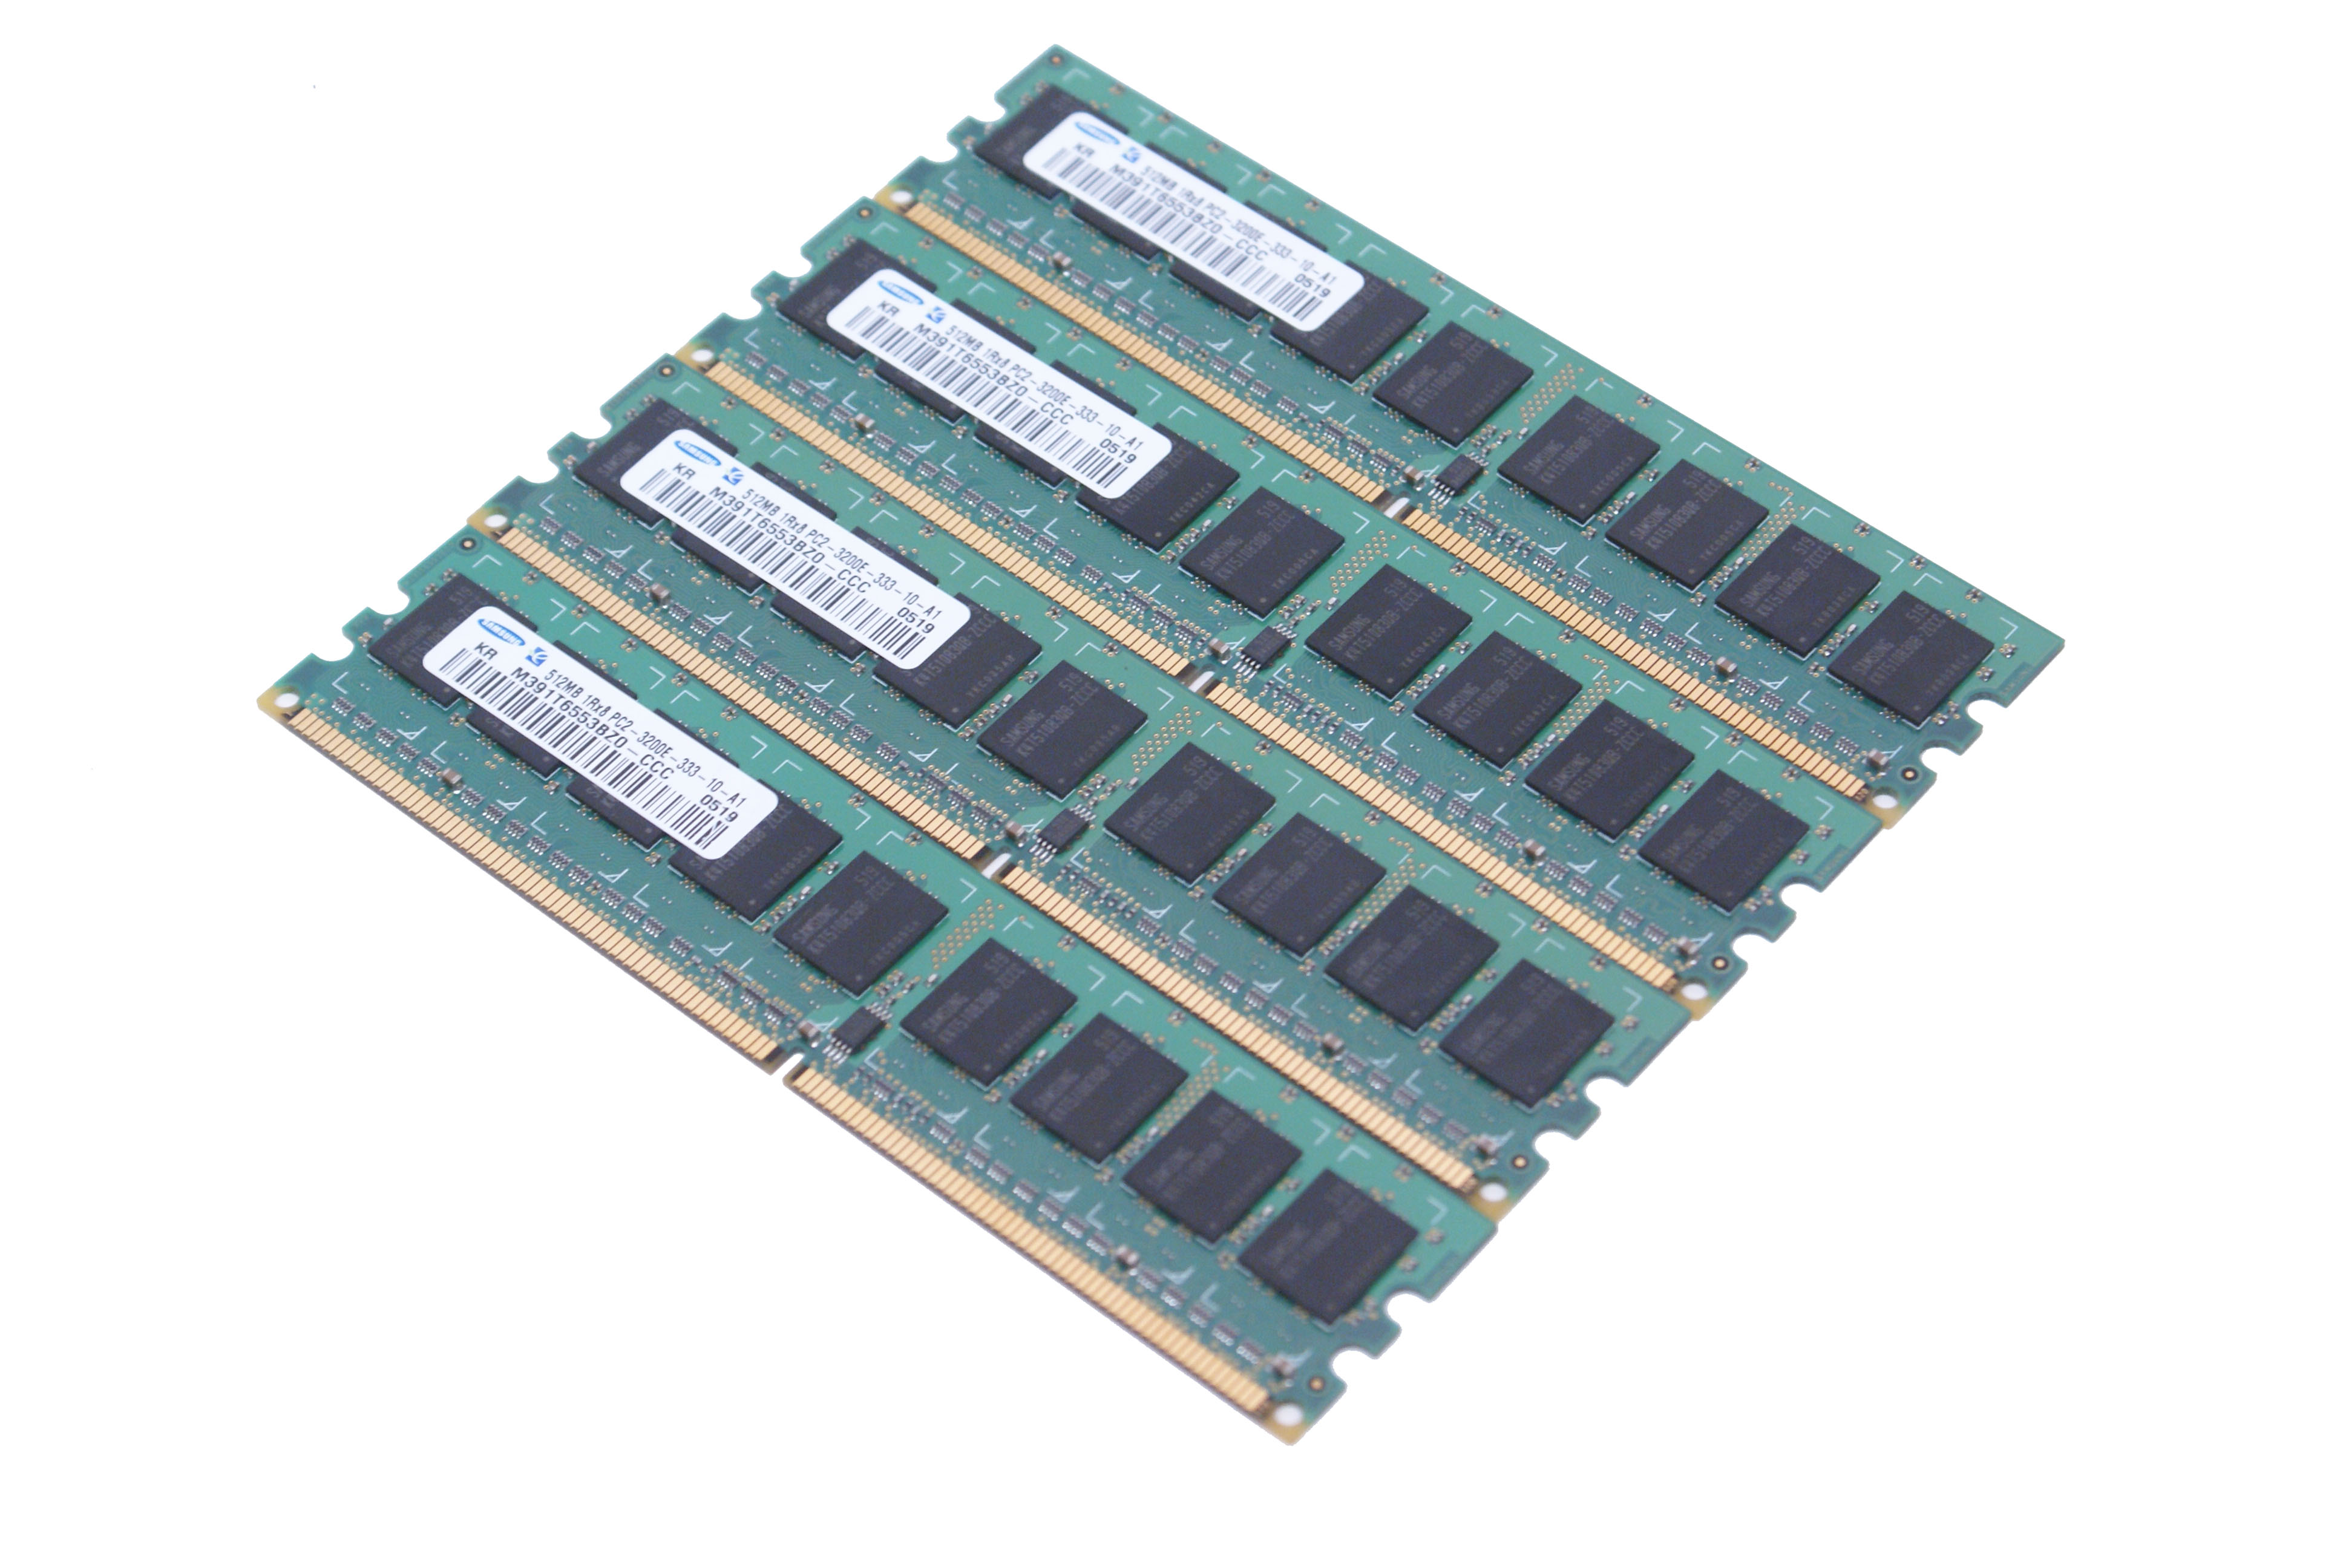 Memorie Ddr2 2048 Mb 667 Mhz (4x 512mb) - Second Hand